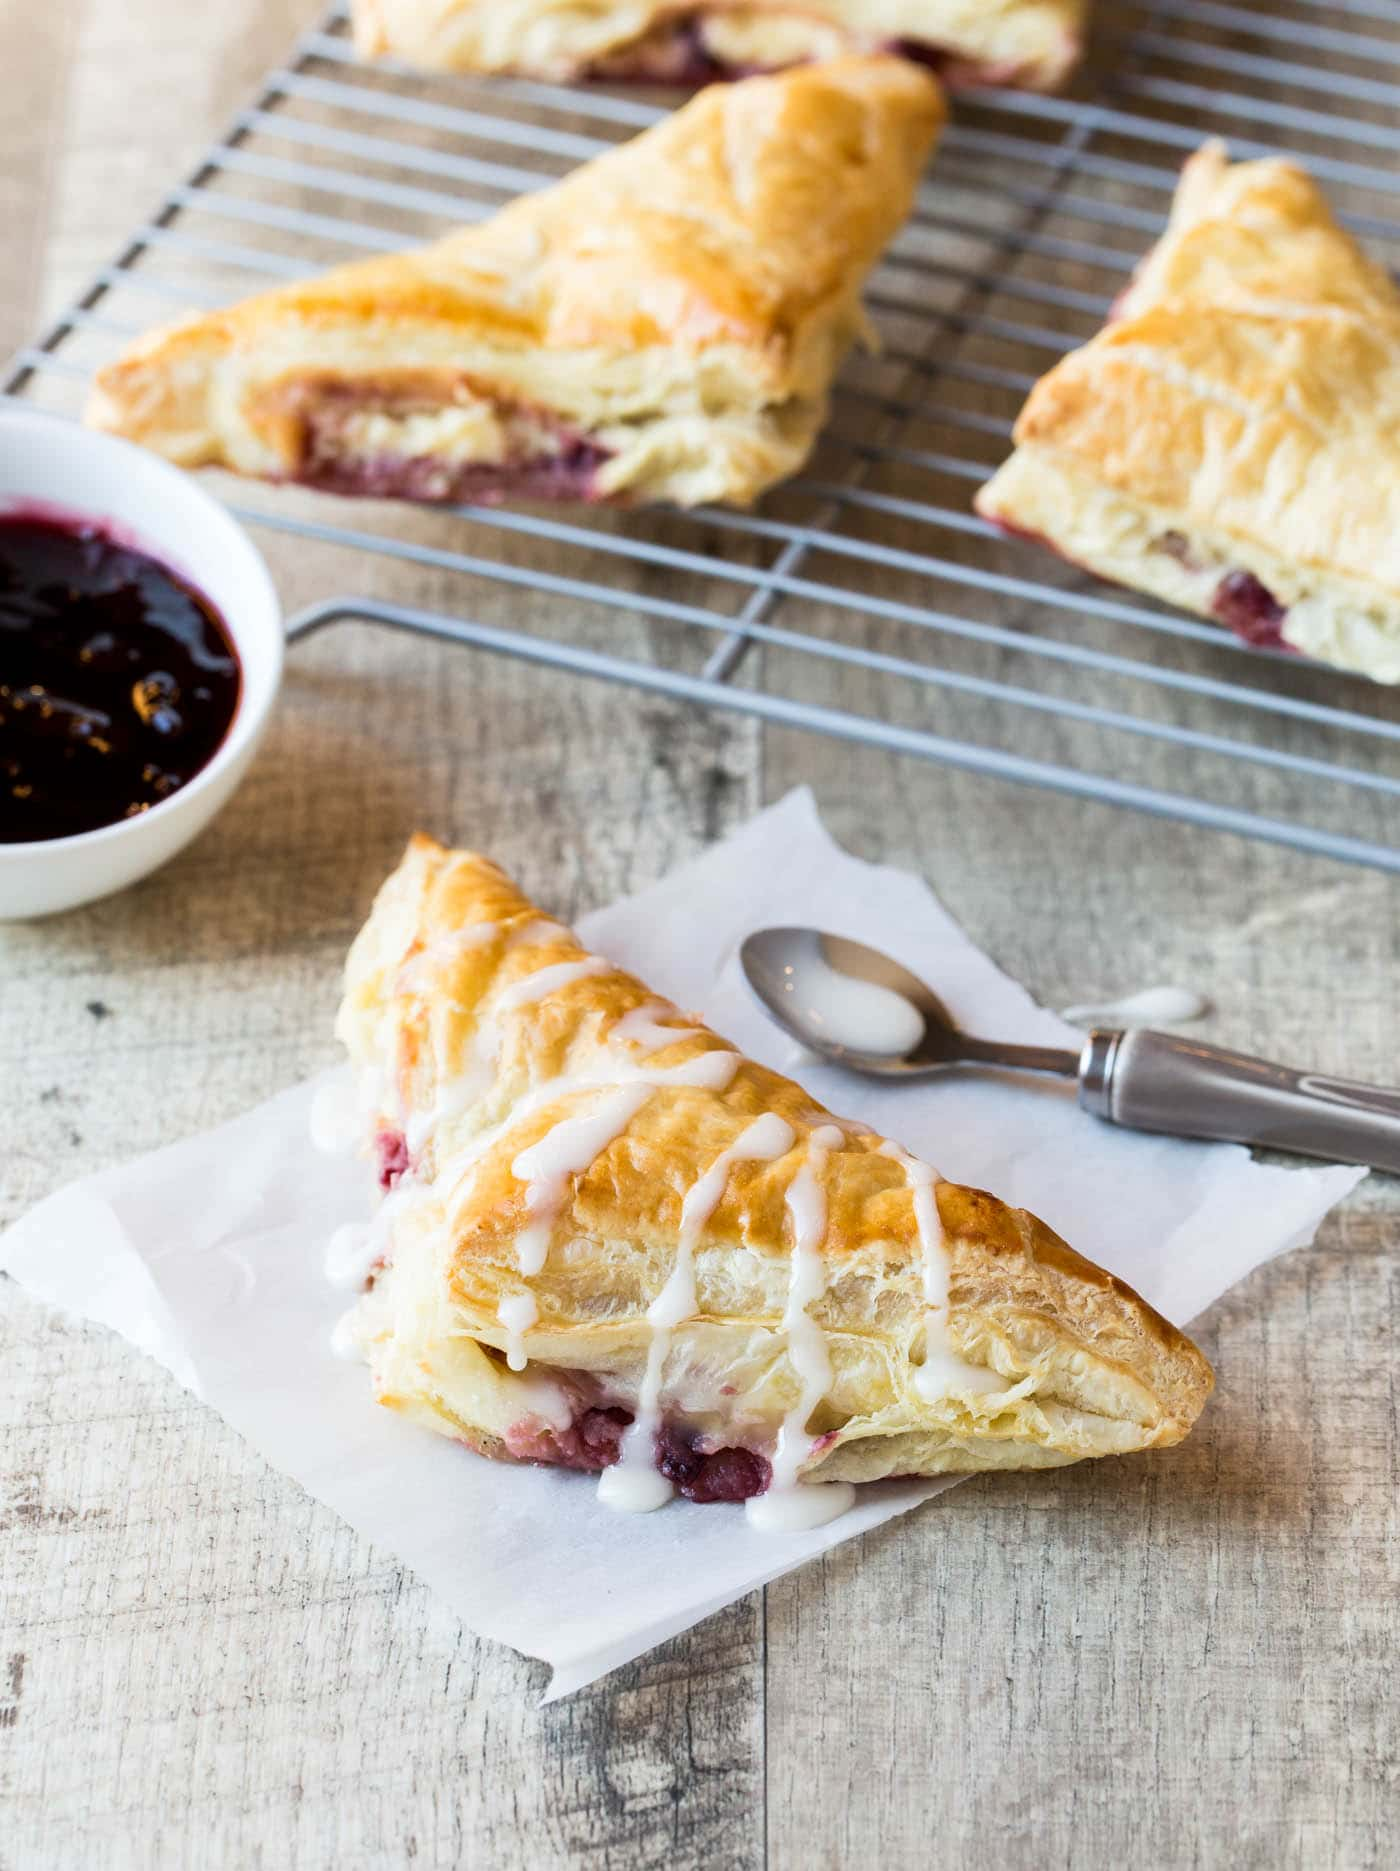 Light, flaky and delicious (and made with an supermarket shortcut), make sure to put these Easy Cherry Cream Cheese Danish on your next brunch menu.